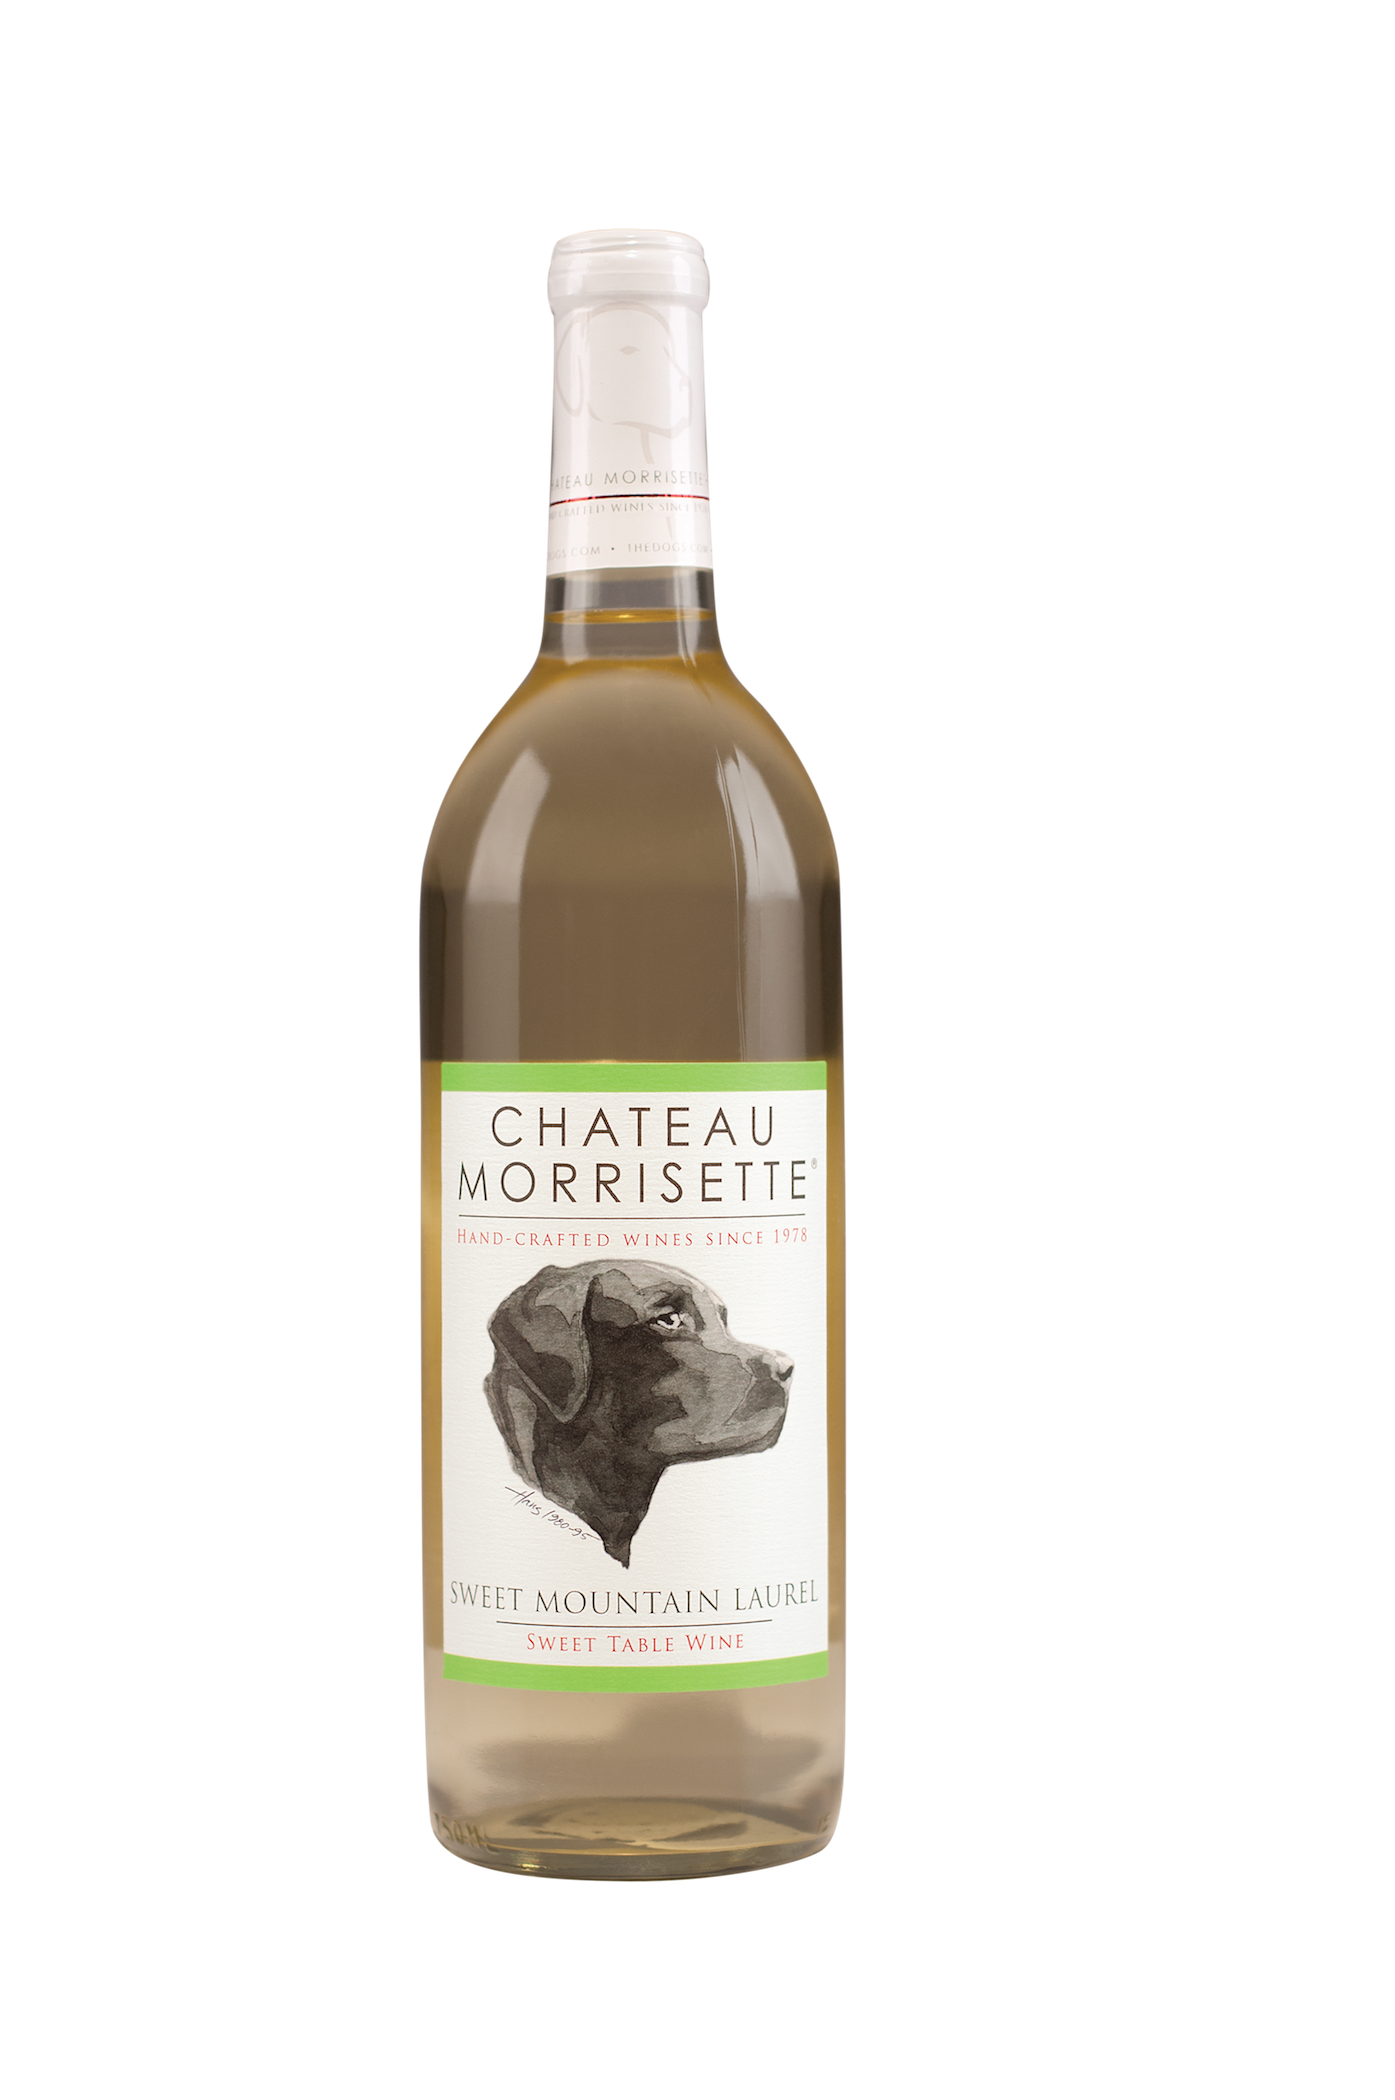 Chateau Morrisette Trade Marketing Assets